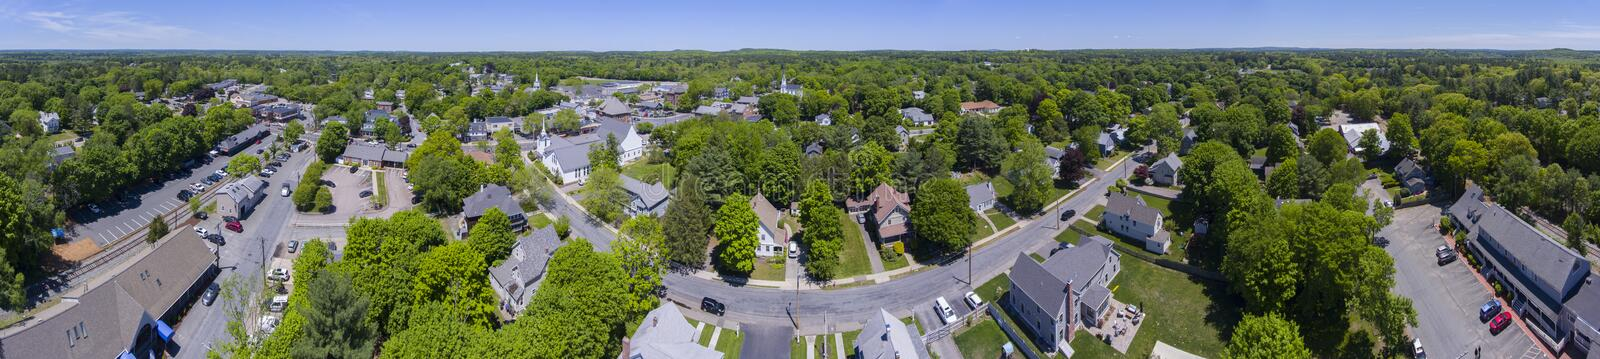 Medfield aerial view, Massachusetts, USA. Aerial view of Medfield historic town center and Maine Street panorama in summer, Medfield, Boston Metro West area stock photos